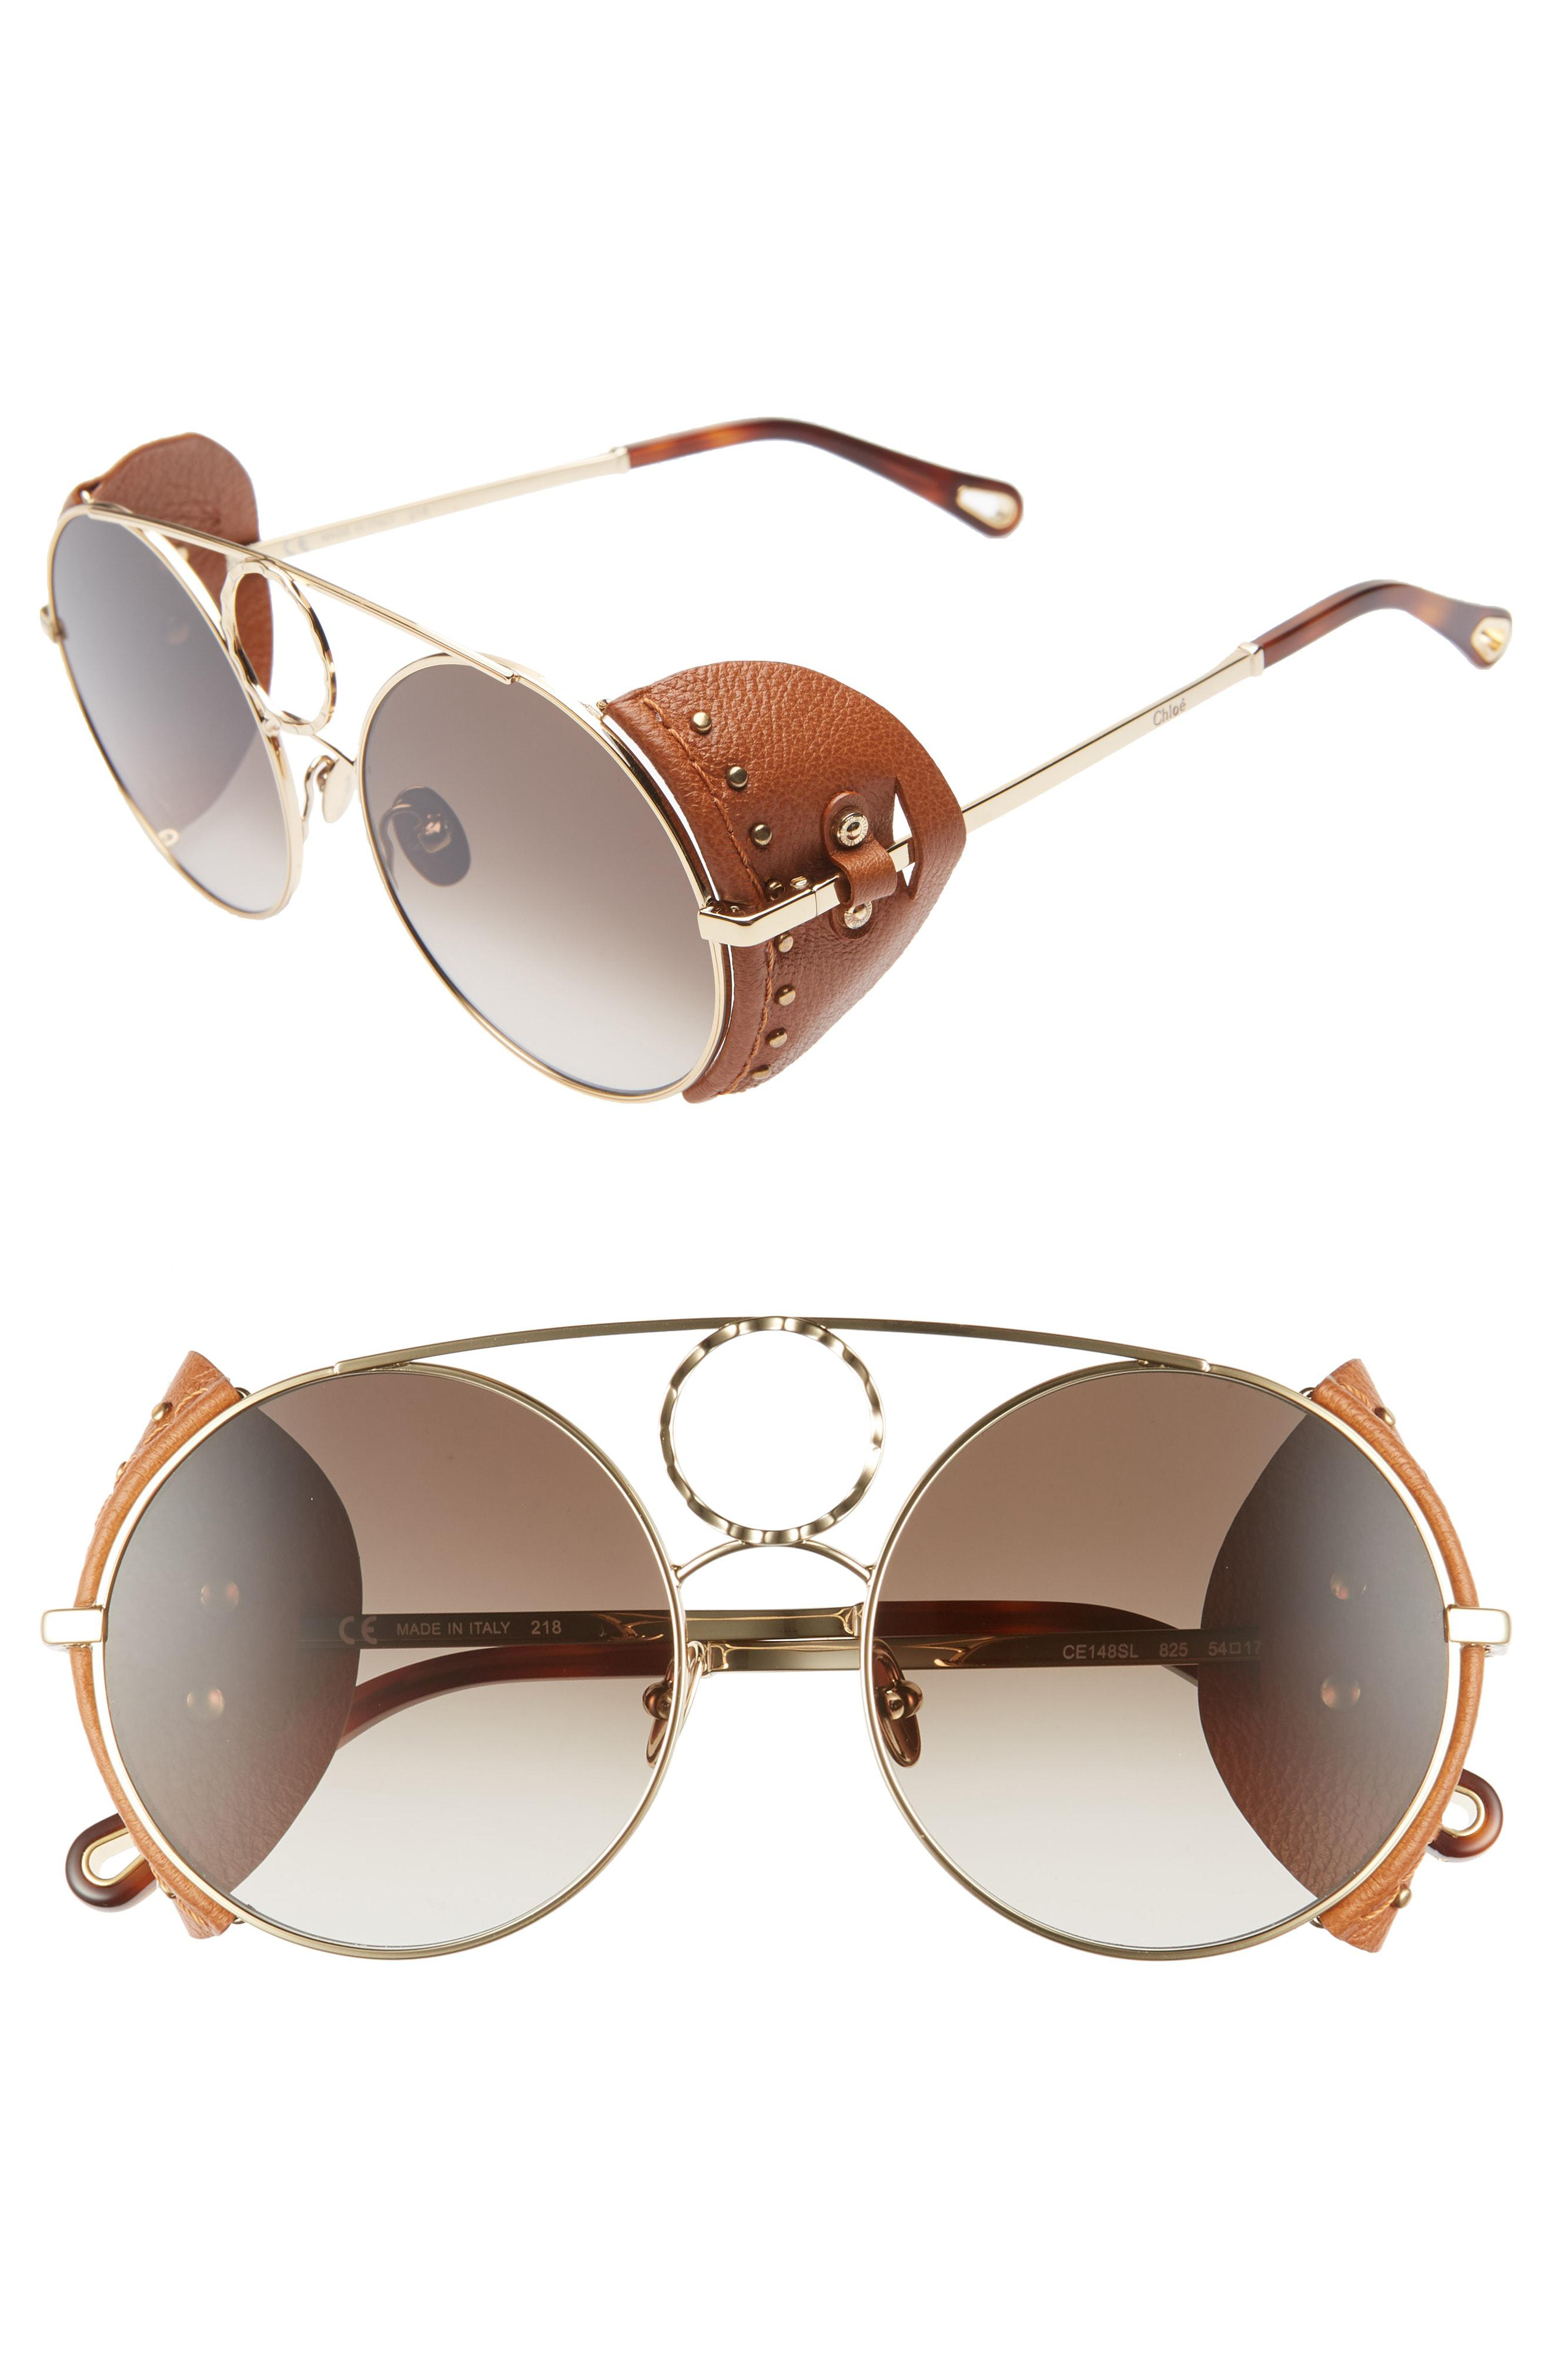 d88e127c78 Chloé 54mm Covered Leather Side Round Sunglasses in Metallic - Lyst